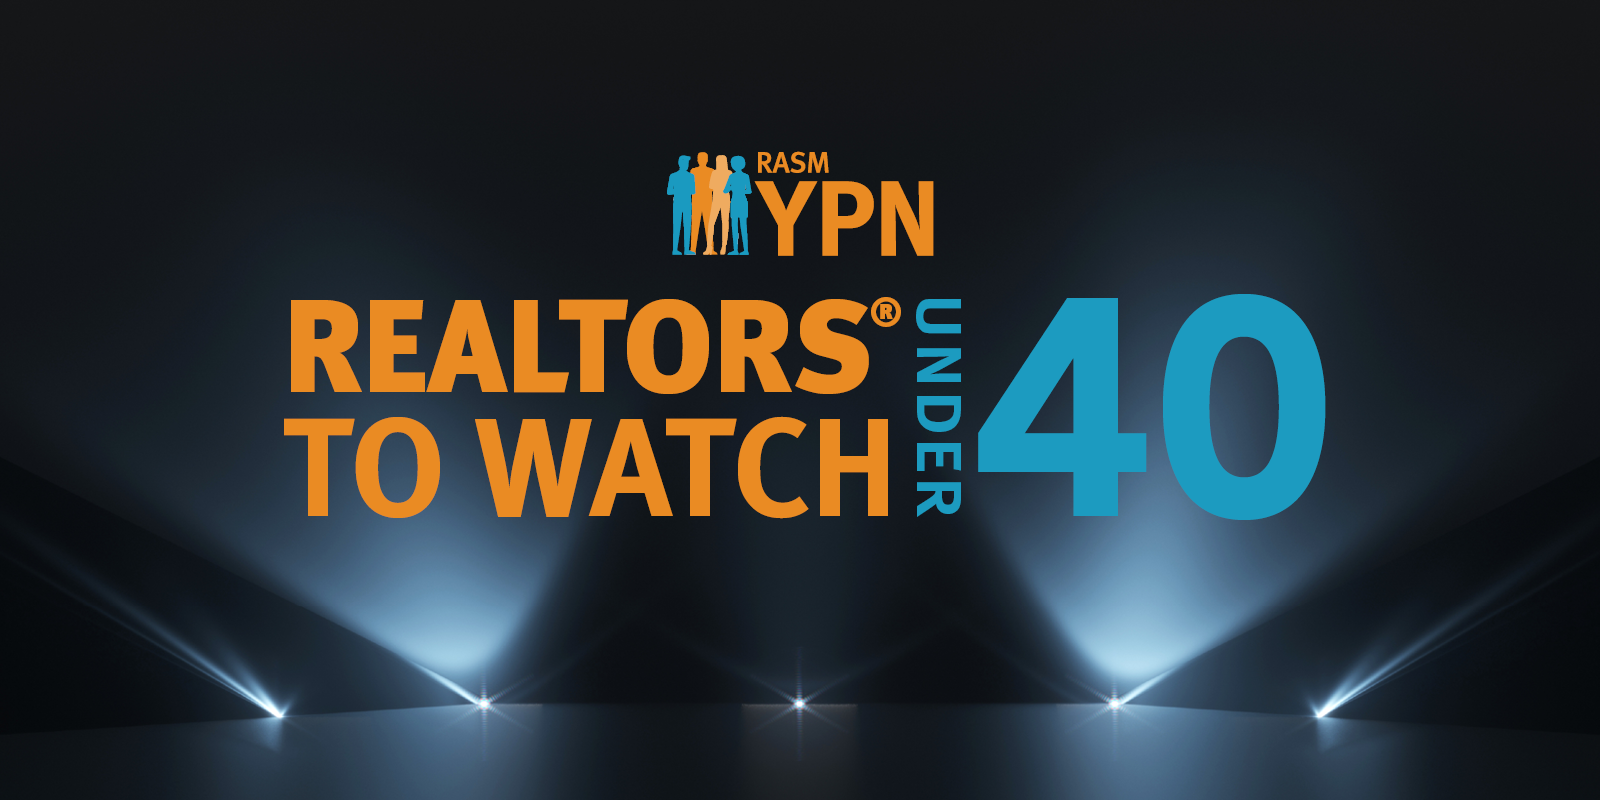 Spotlight on REALTORS to Watch Logo